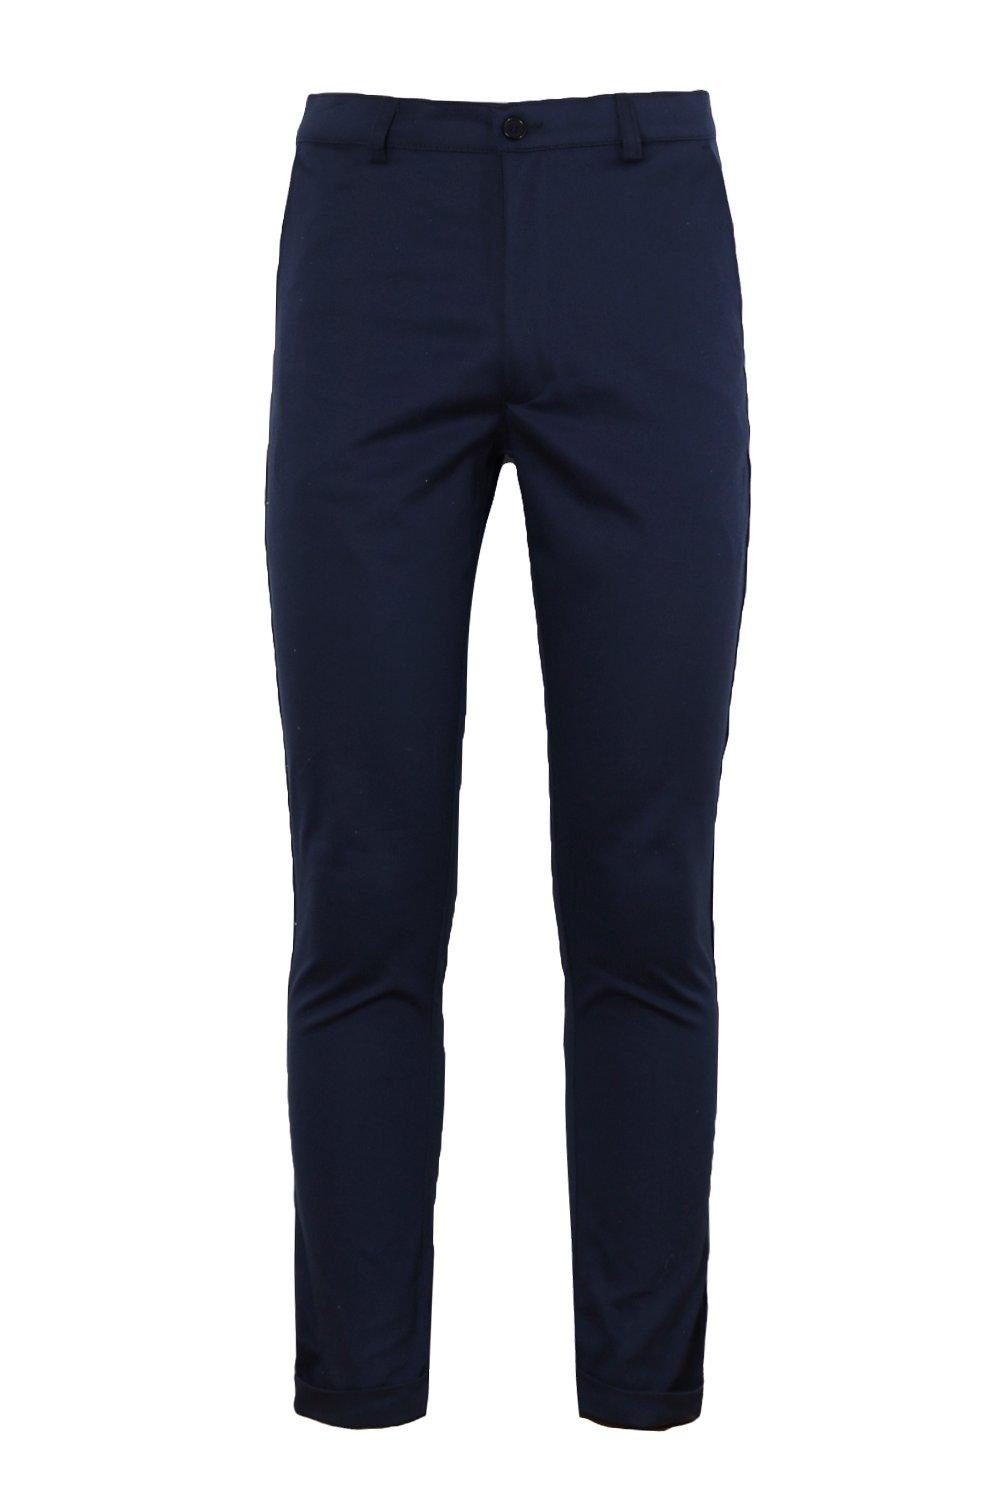 boohooMAN Navy Tapered Fit Chino With Stretch